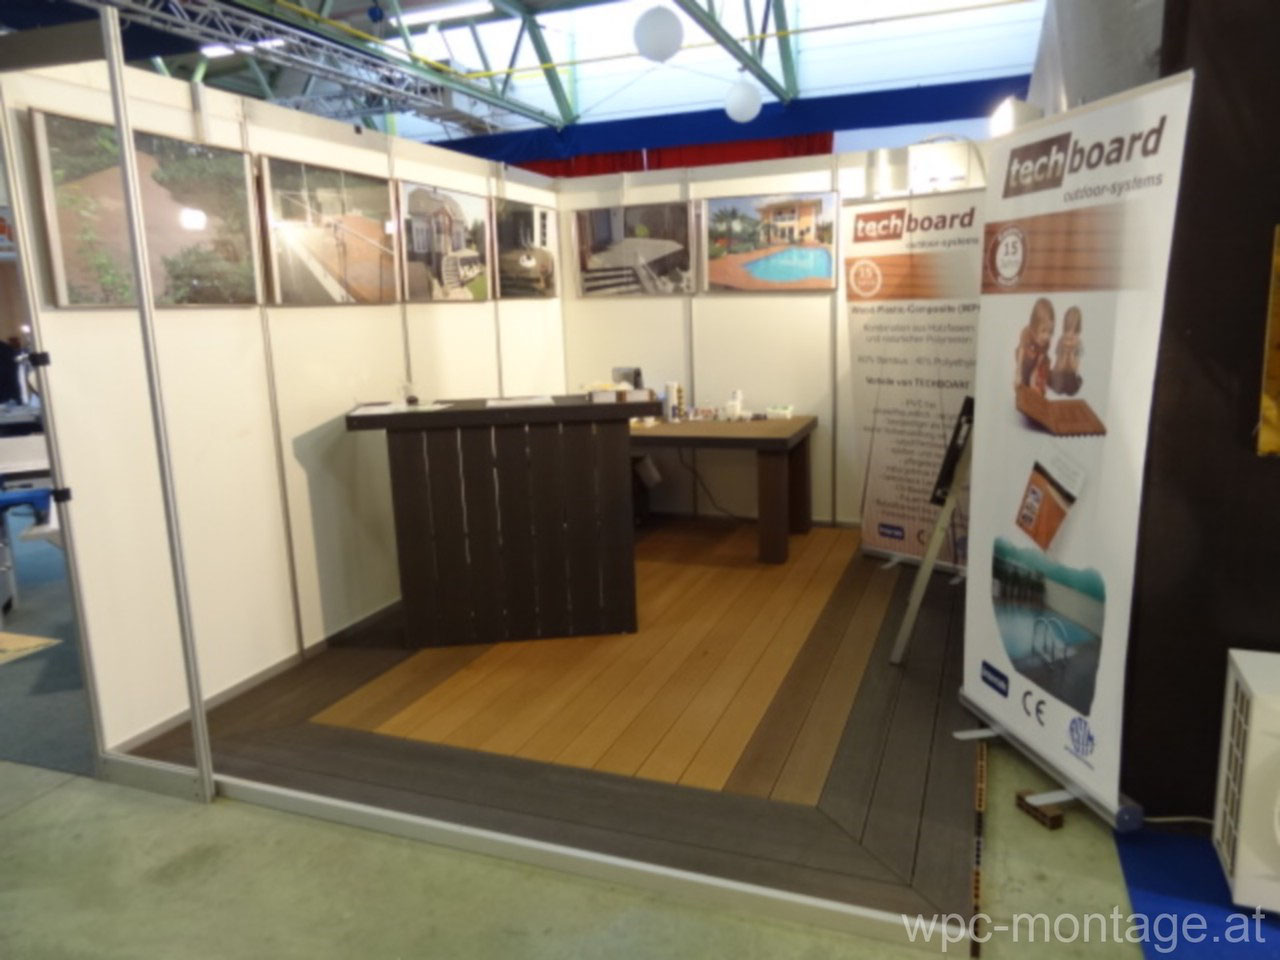 bildergalerie messestand messetermine wpc dielen verkauf montage wpc poolterrasse adorjan. Black Bedroom Furniture Sets. Home Design Ideas